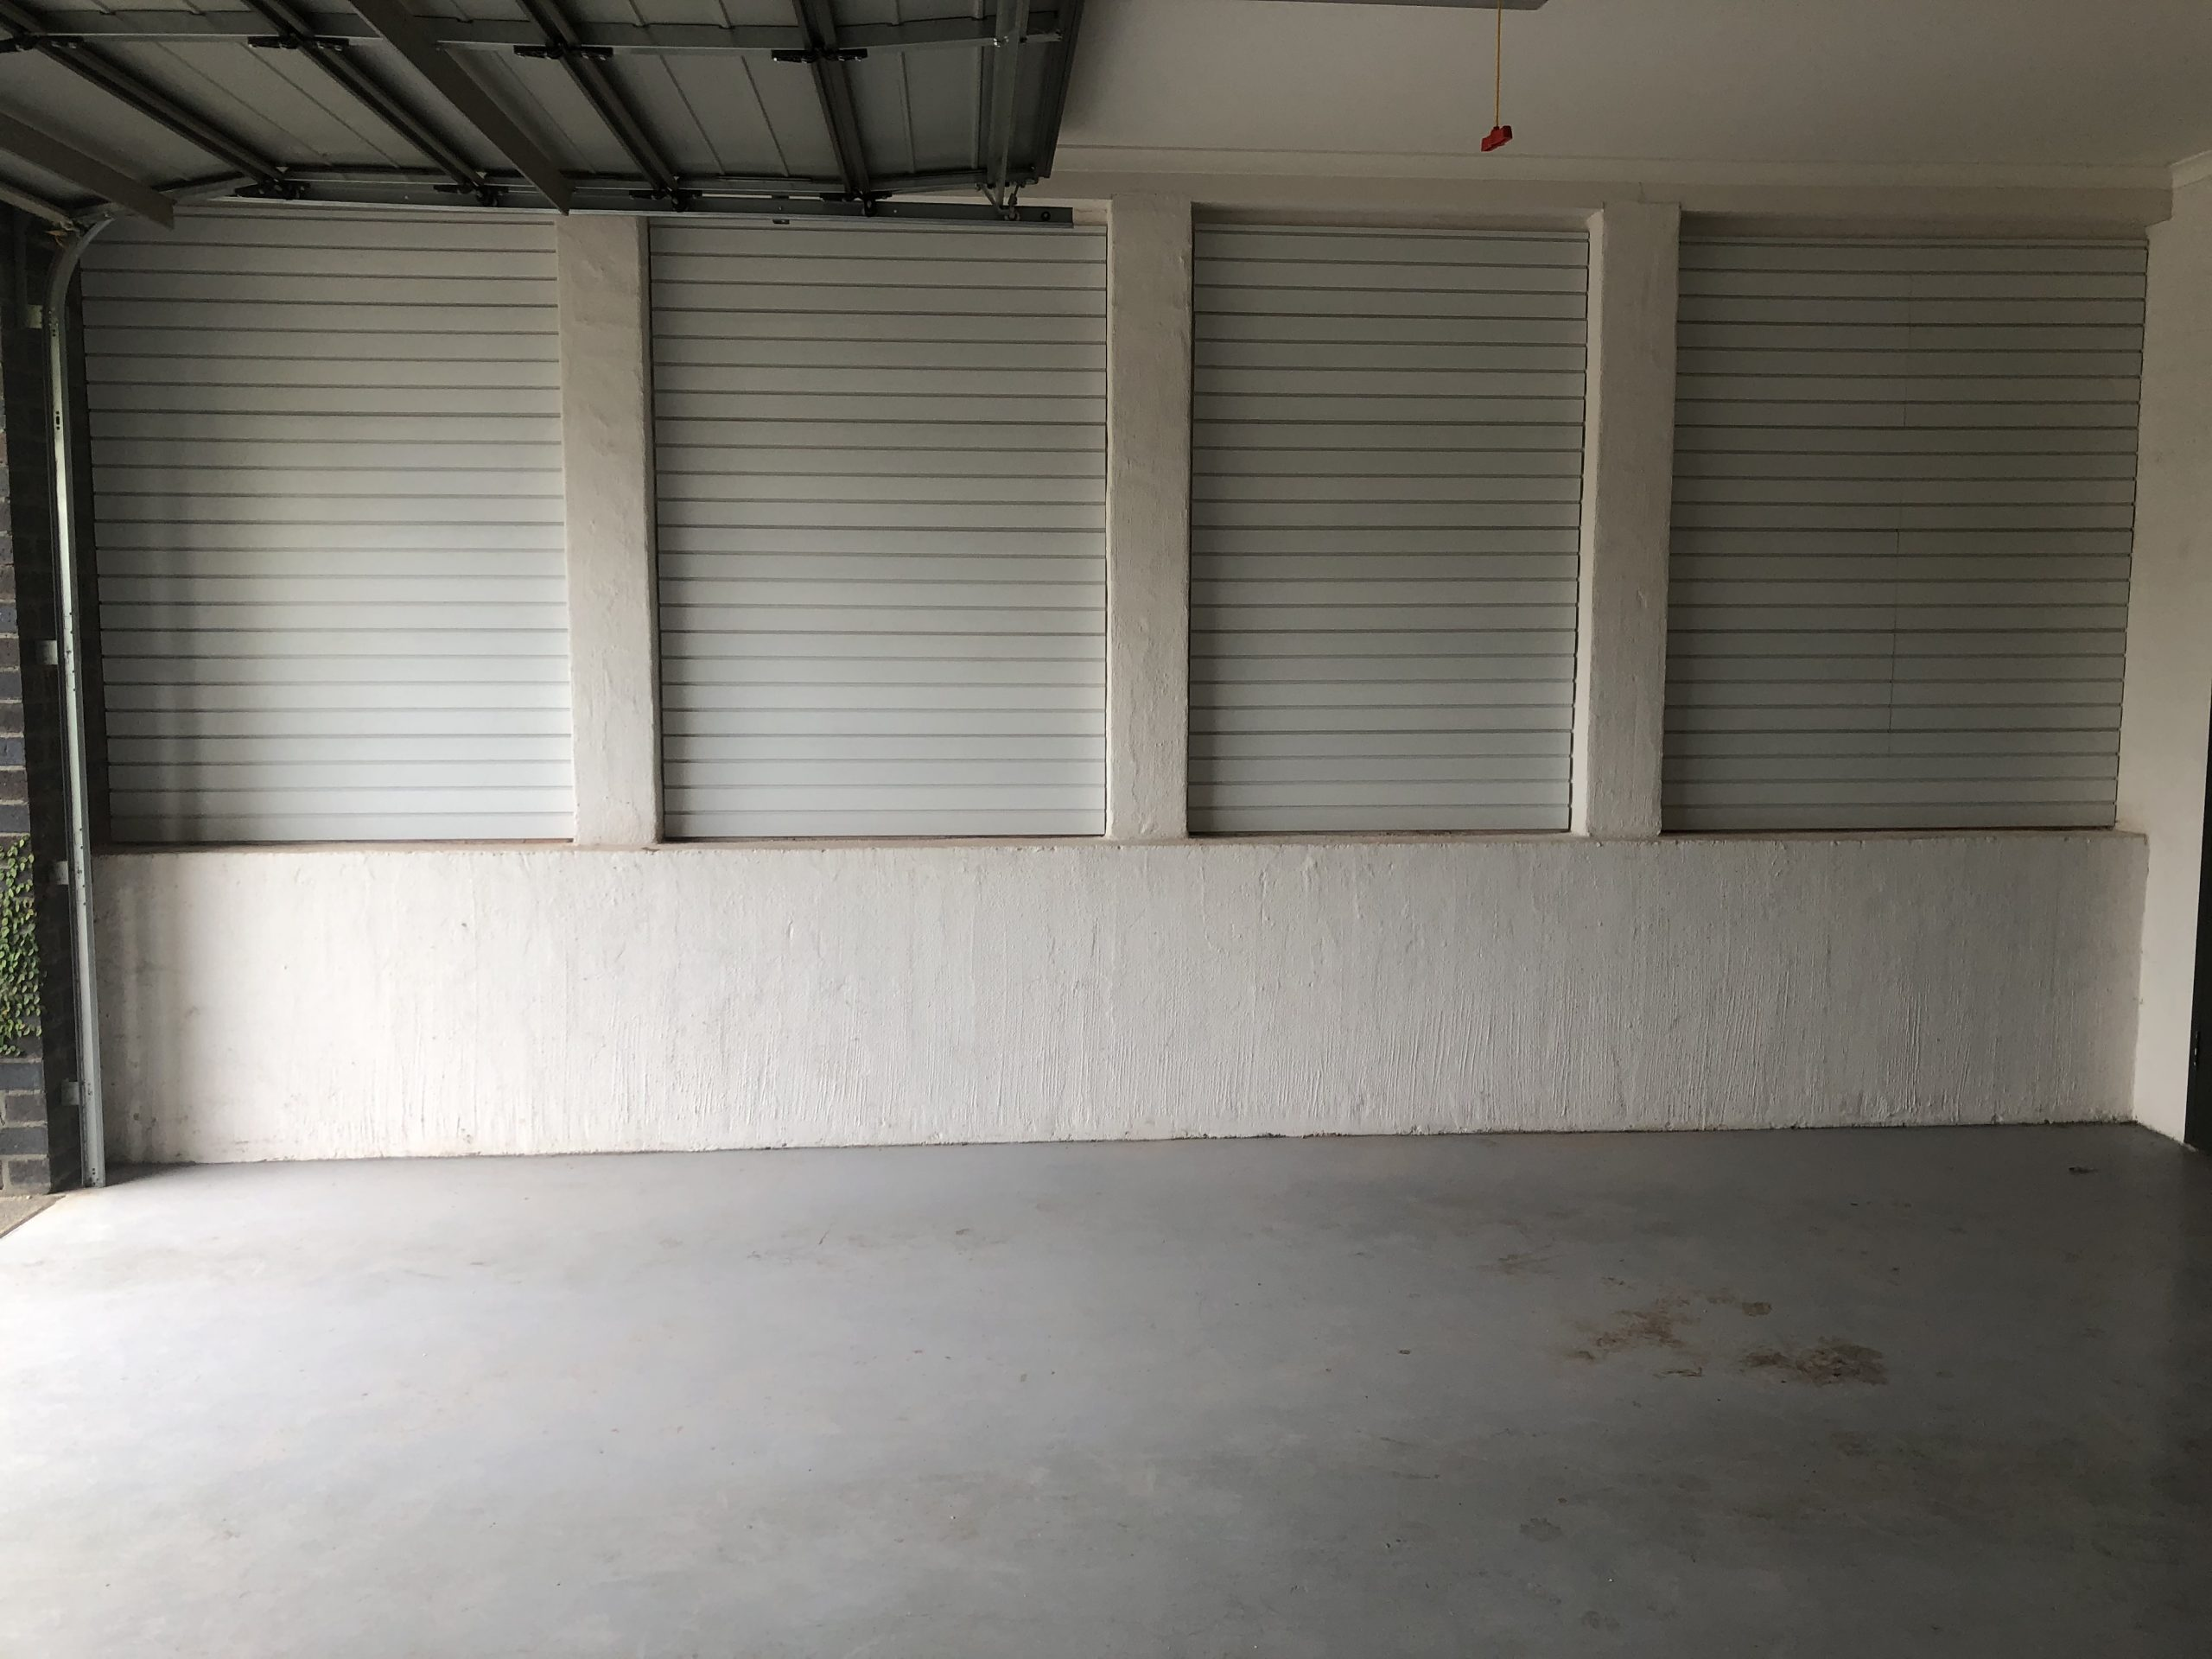 Brite White Wall Panels for Garage